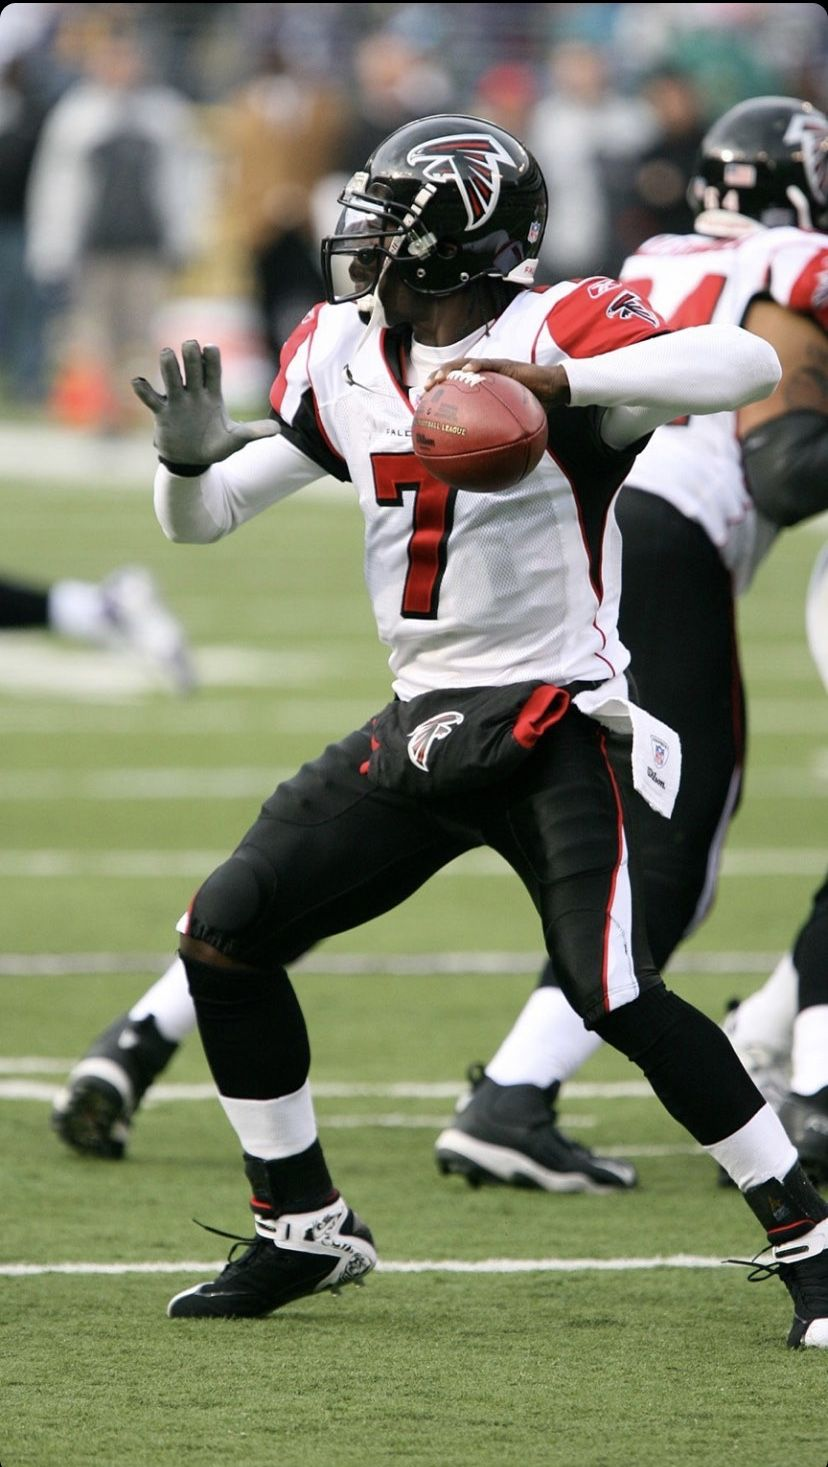 Pin By Jonathan On Baby S Wall In 2020 Michael Vick Atlanta Falcons Football Falcons Football